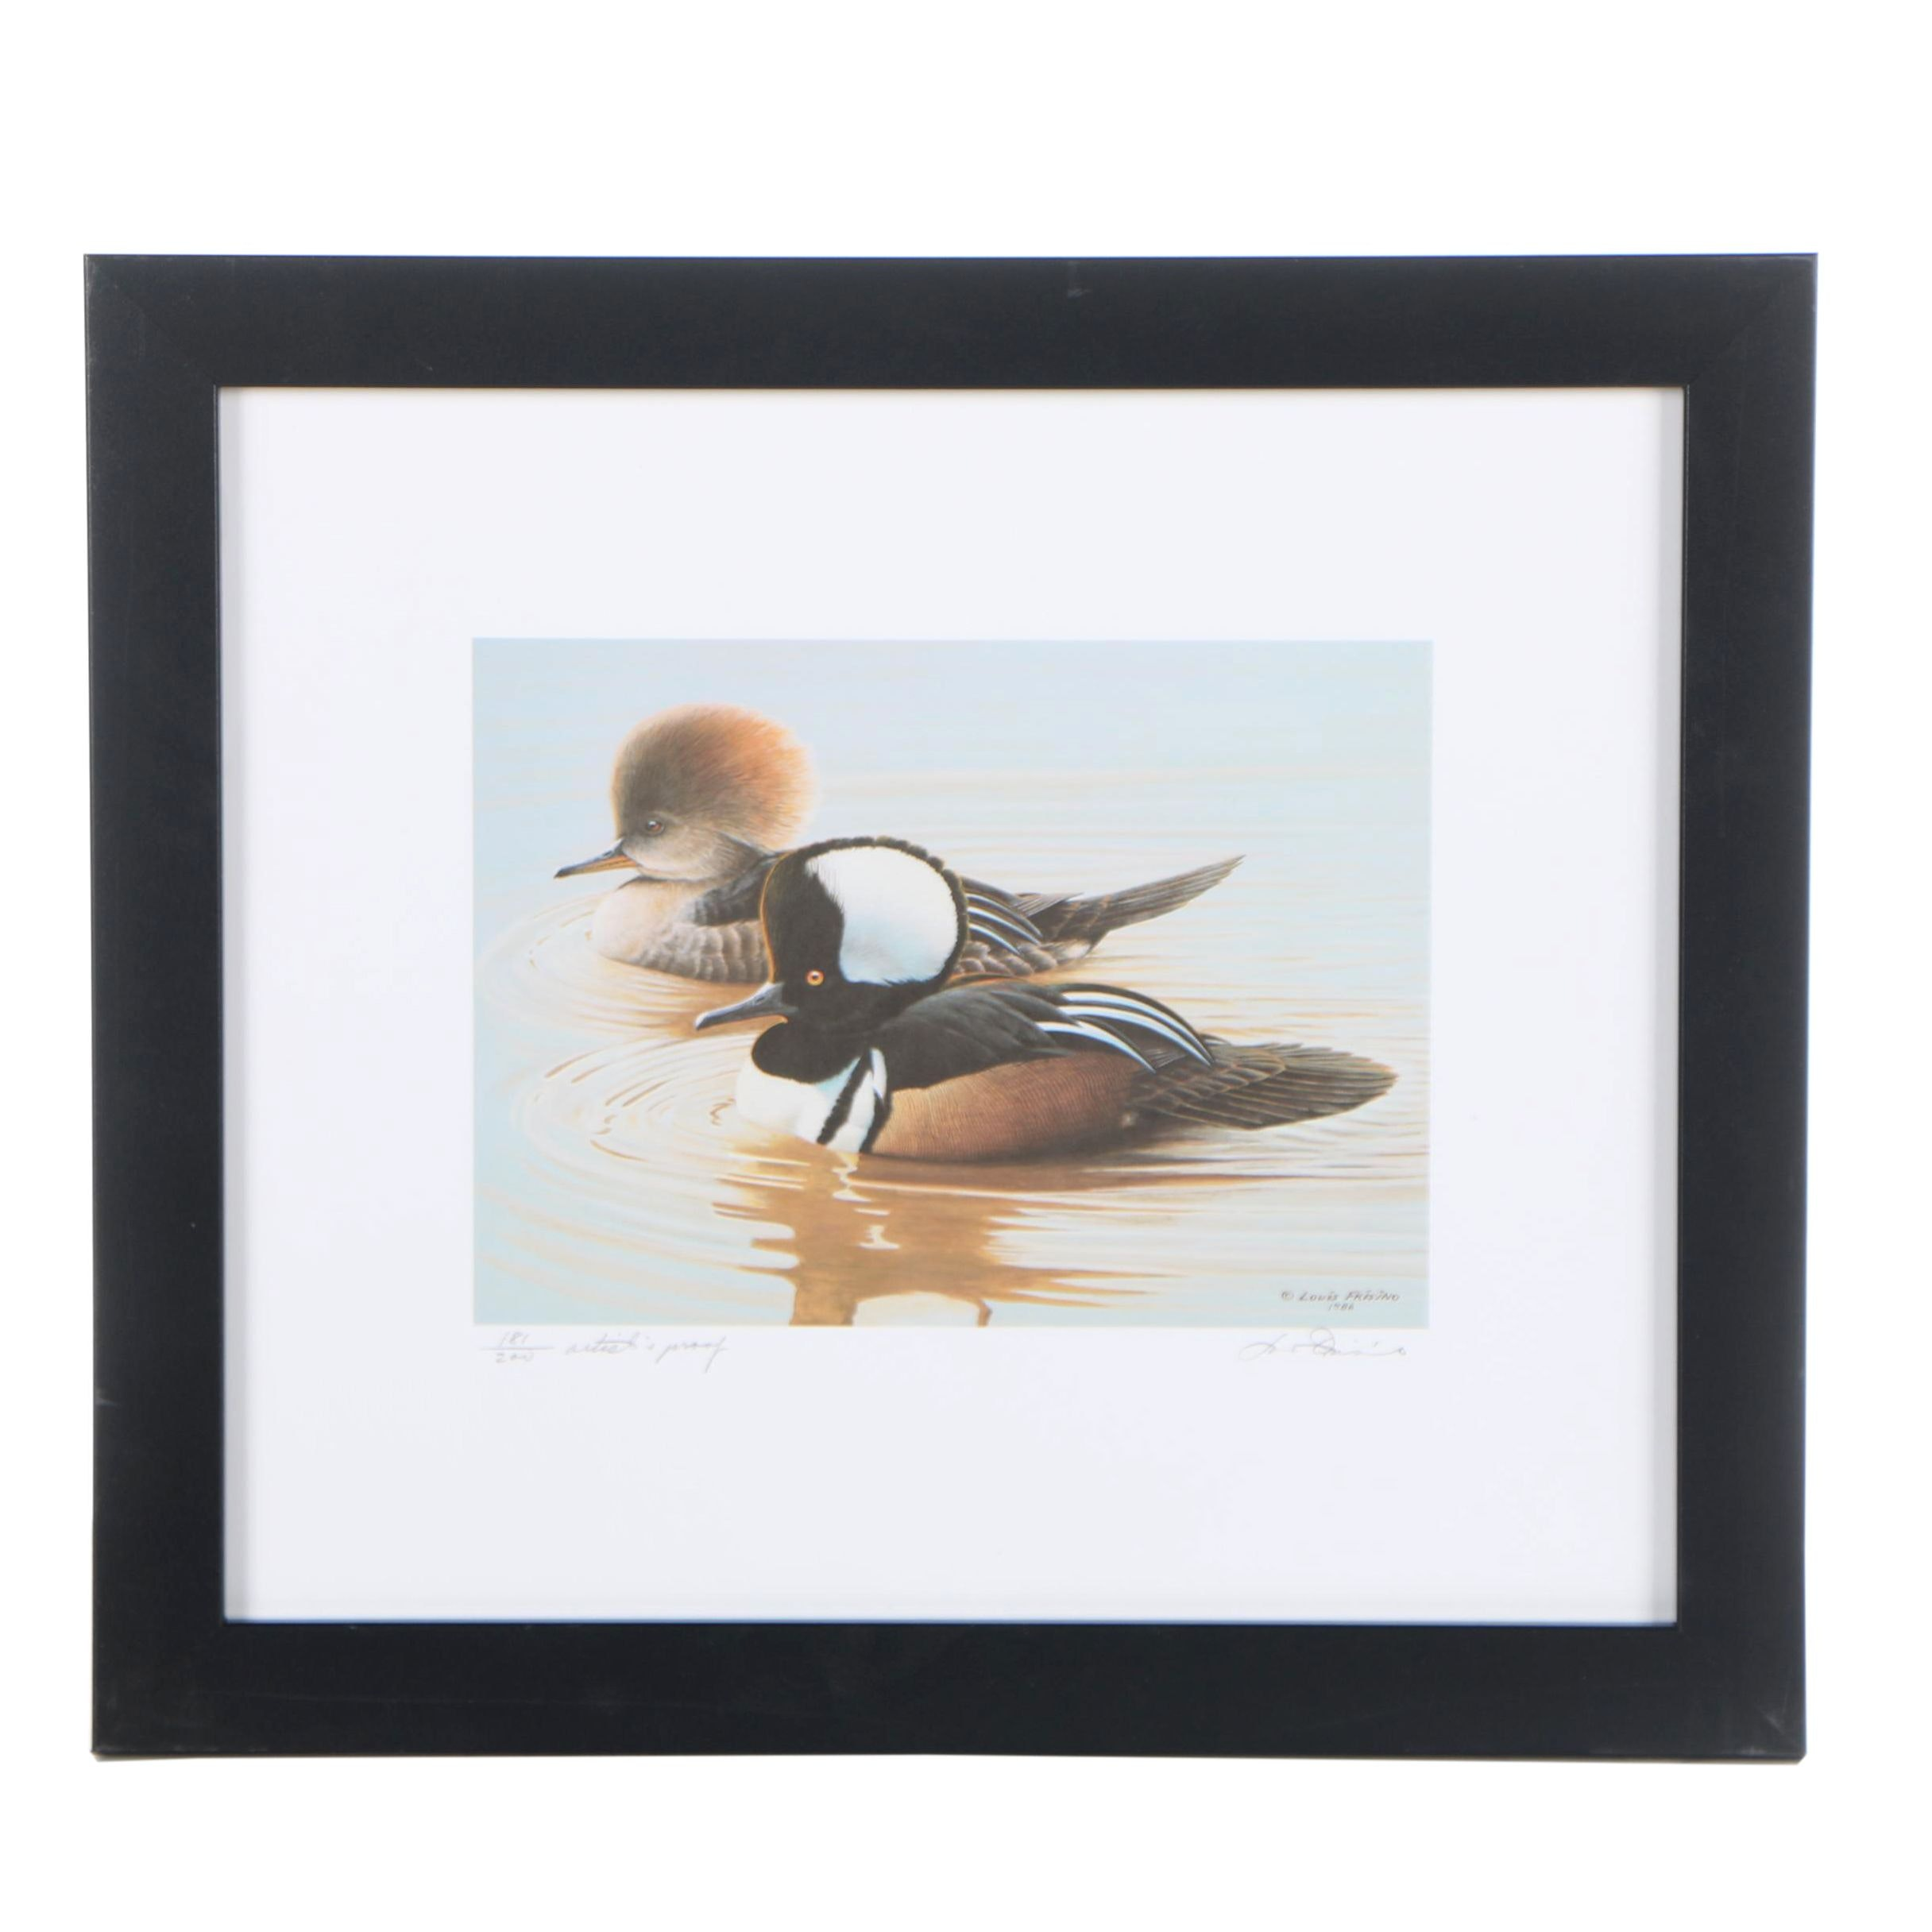 "Loius Frisino 1986 Offset Lithograph "" Maryland Migratory Waterfowl"""